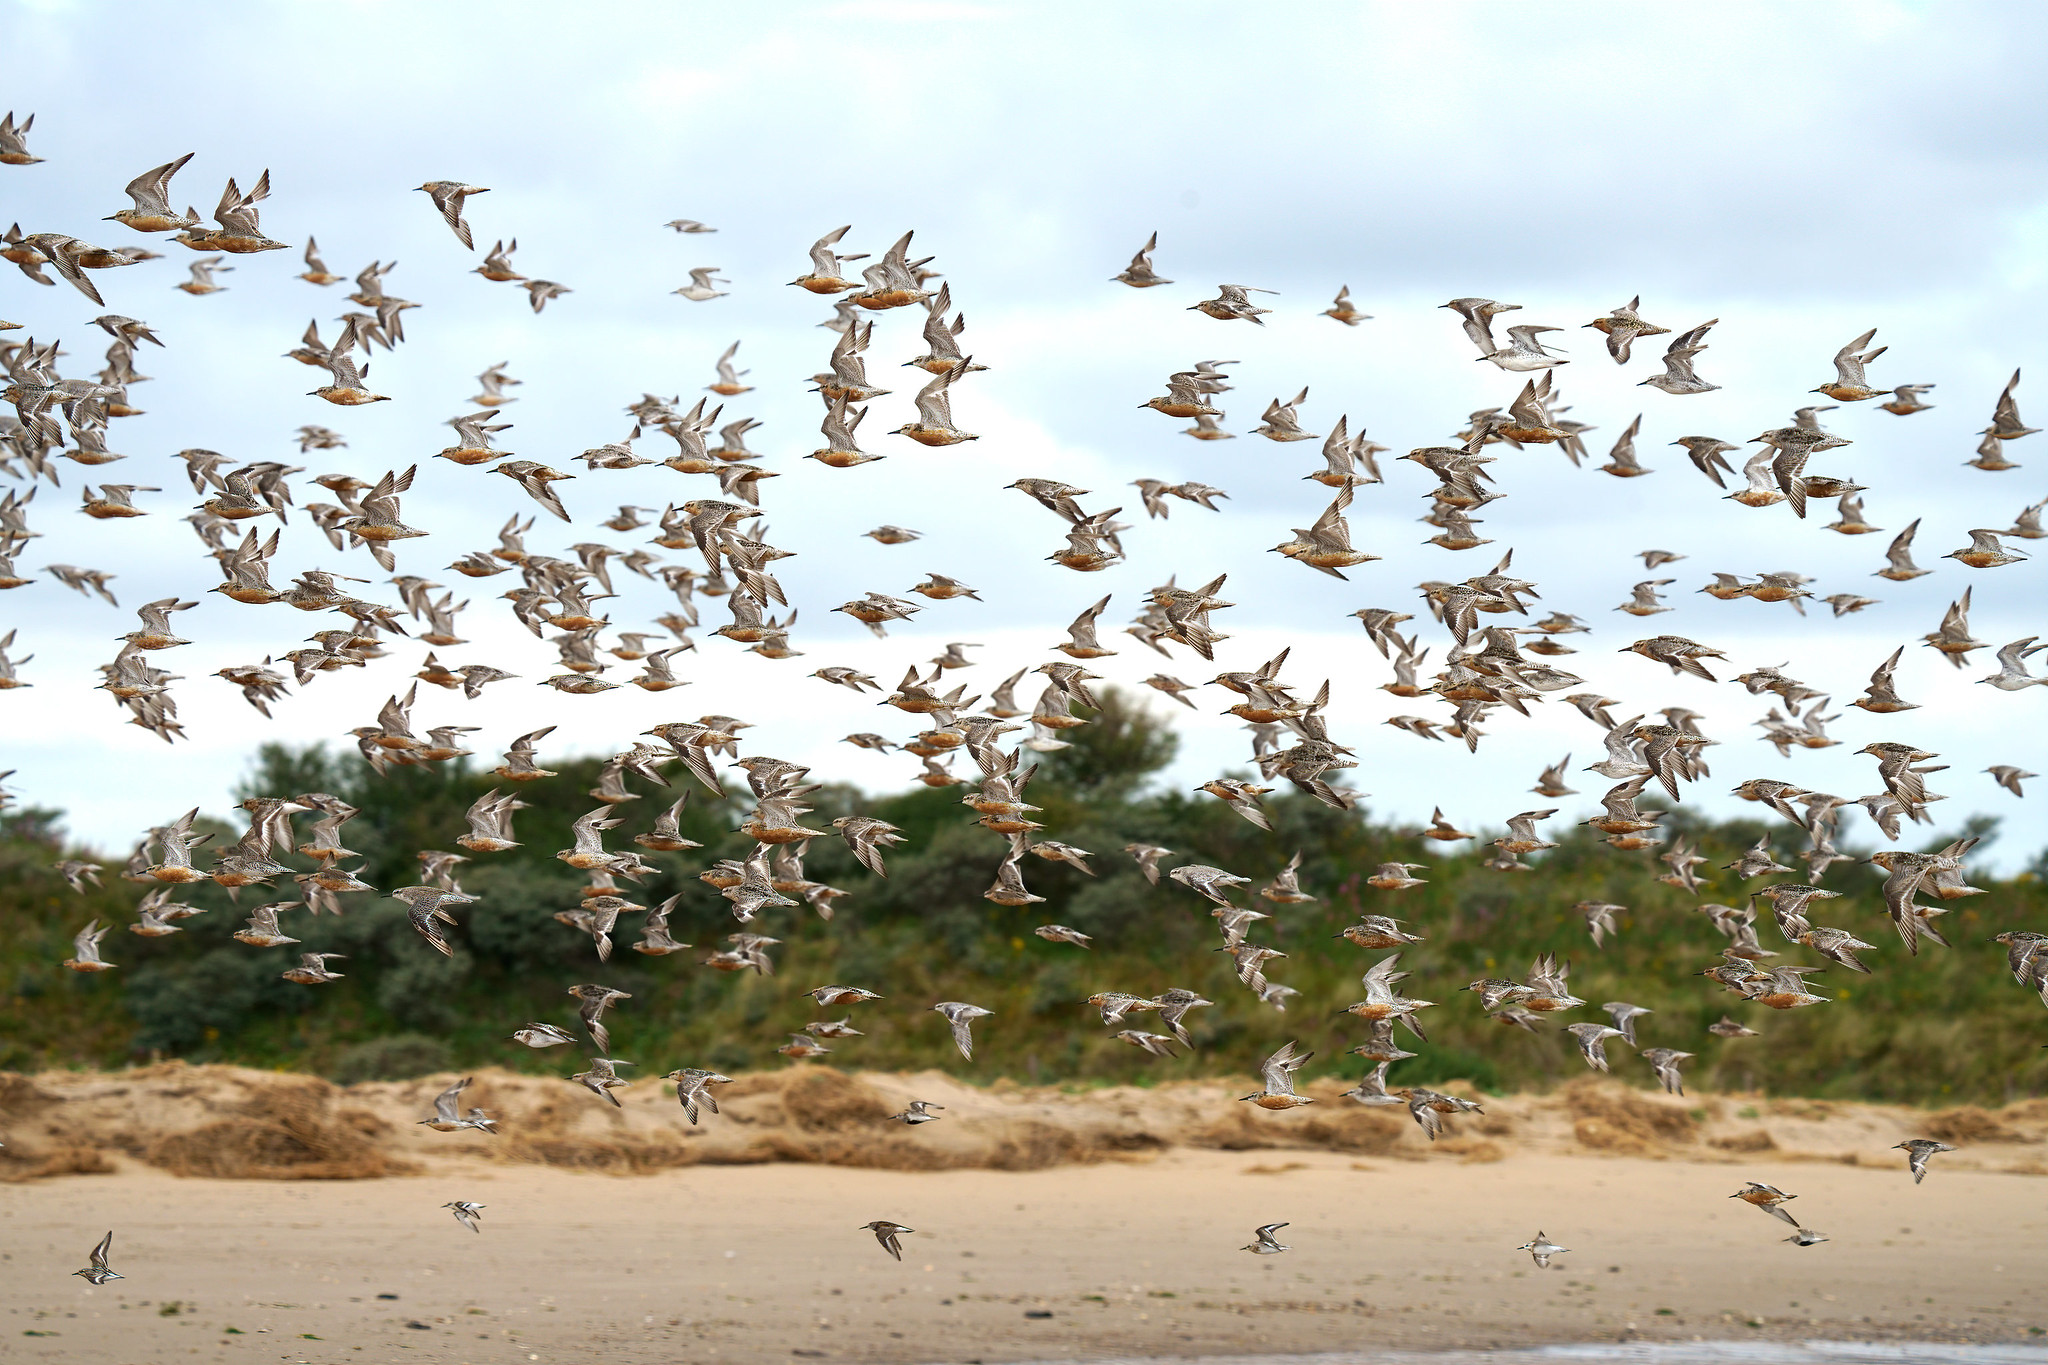 Mixed Waders - Knot and Sanderling